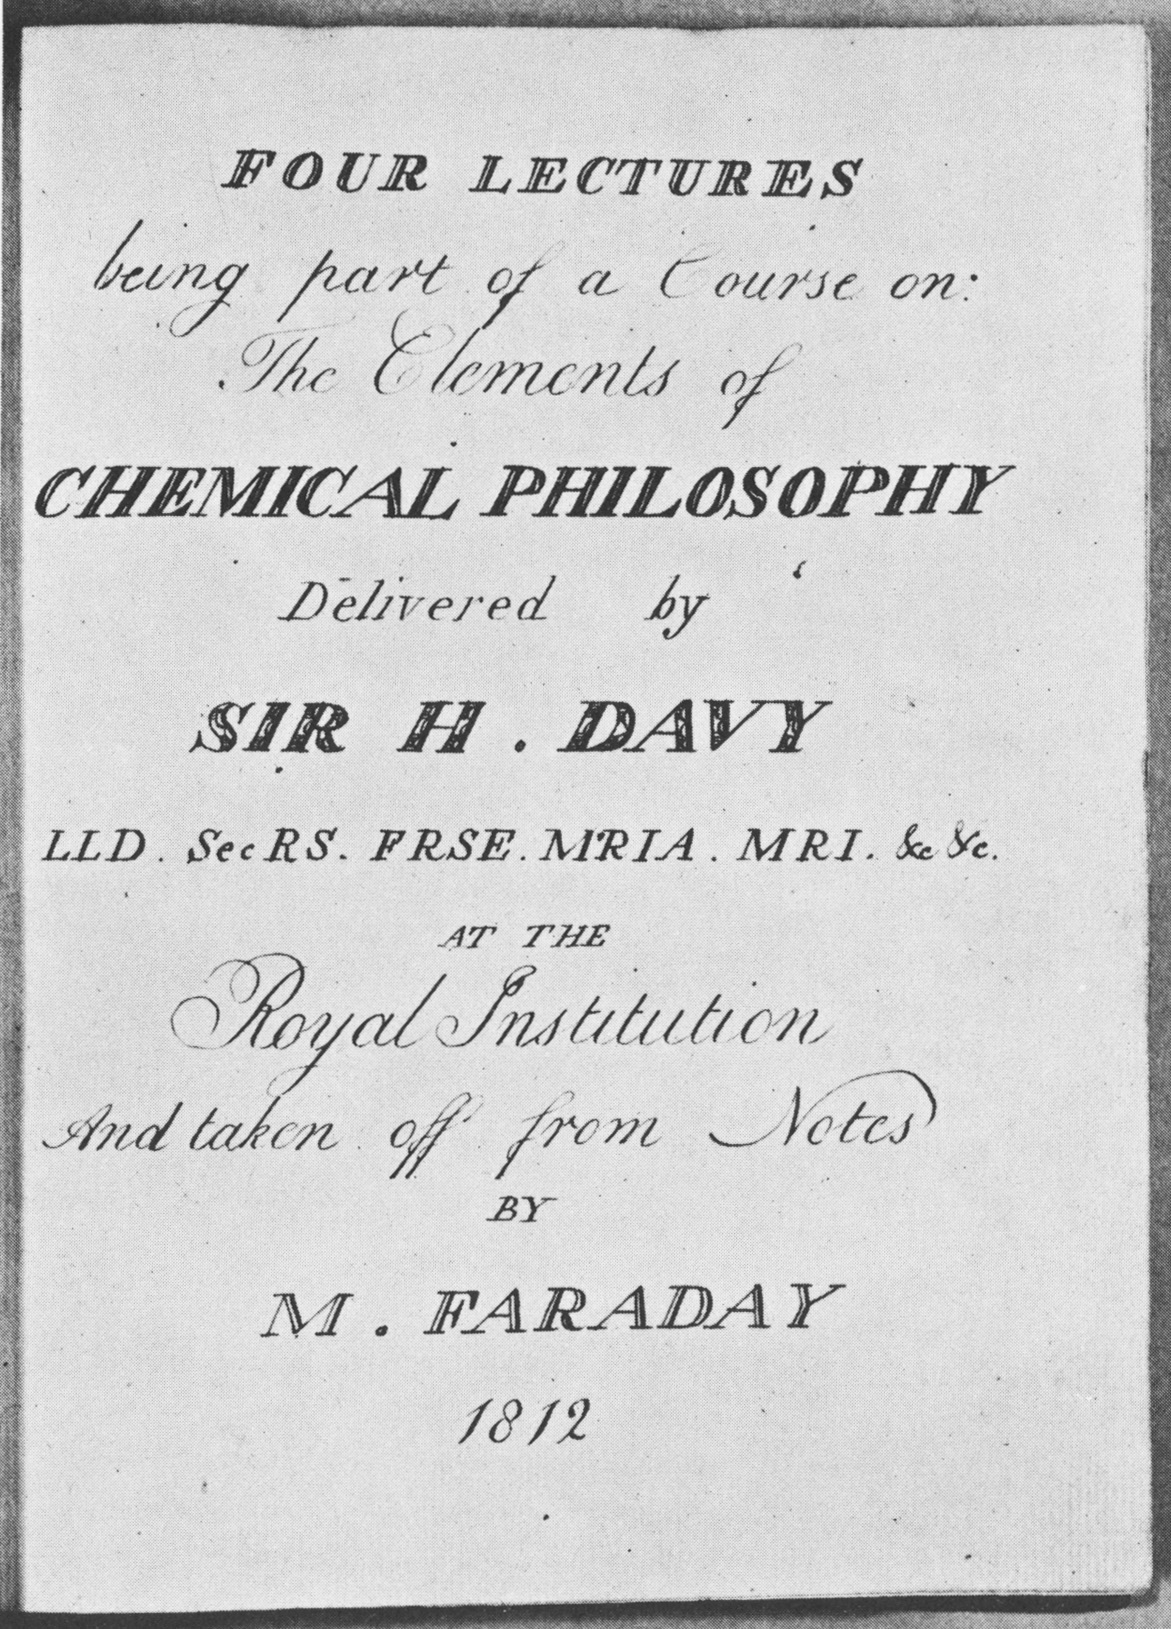 http://reasonandreflection.files.wordpress.com/2013/08/faraday-doc-006.jpg